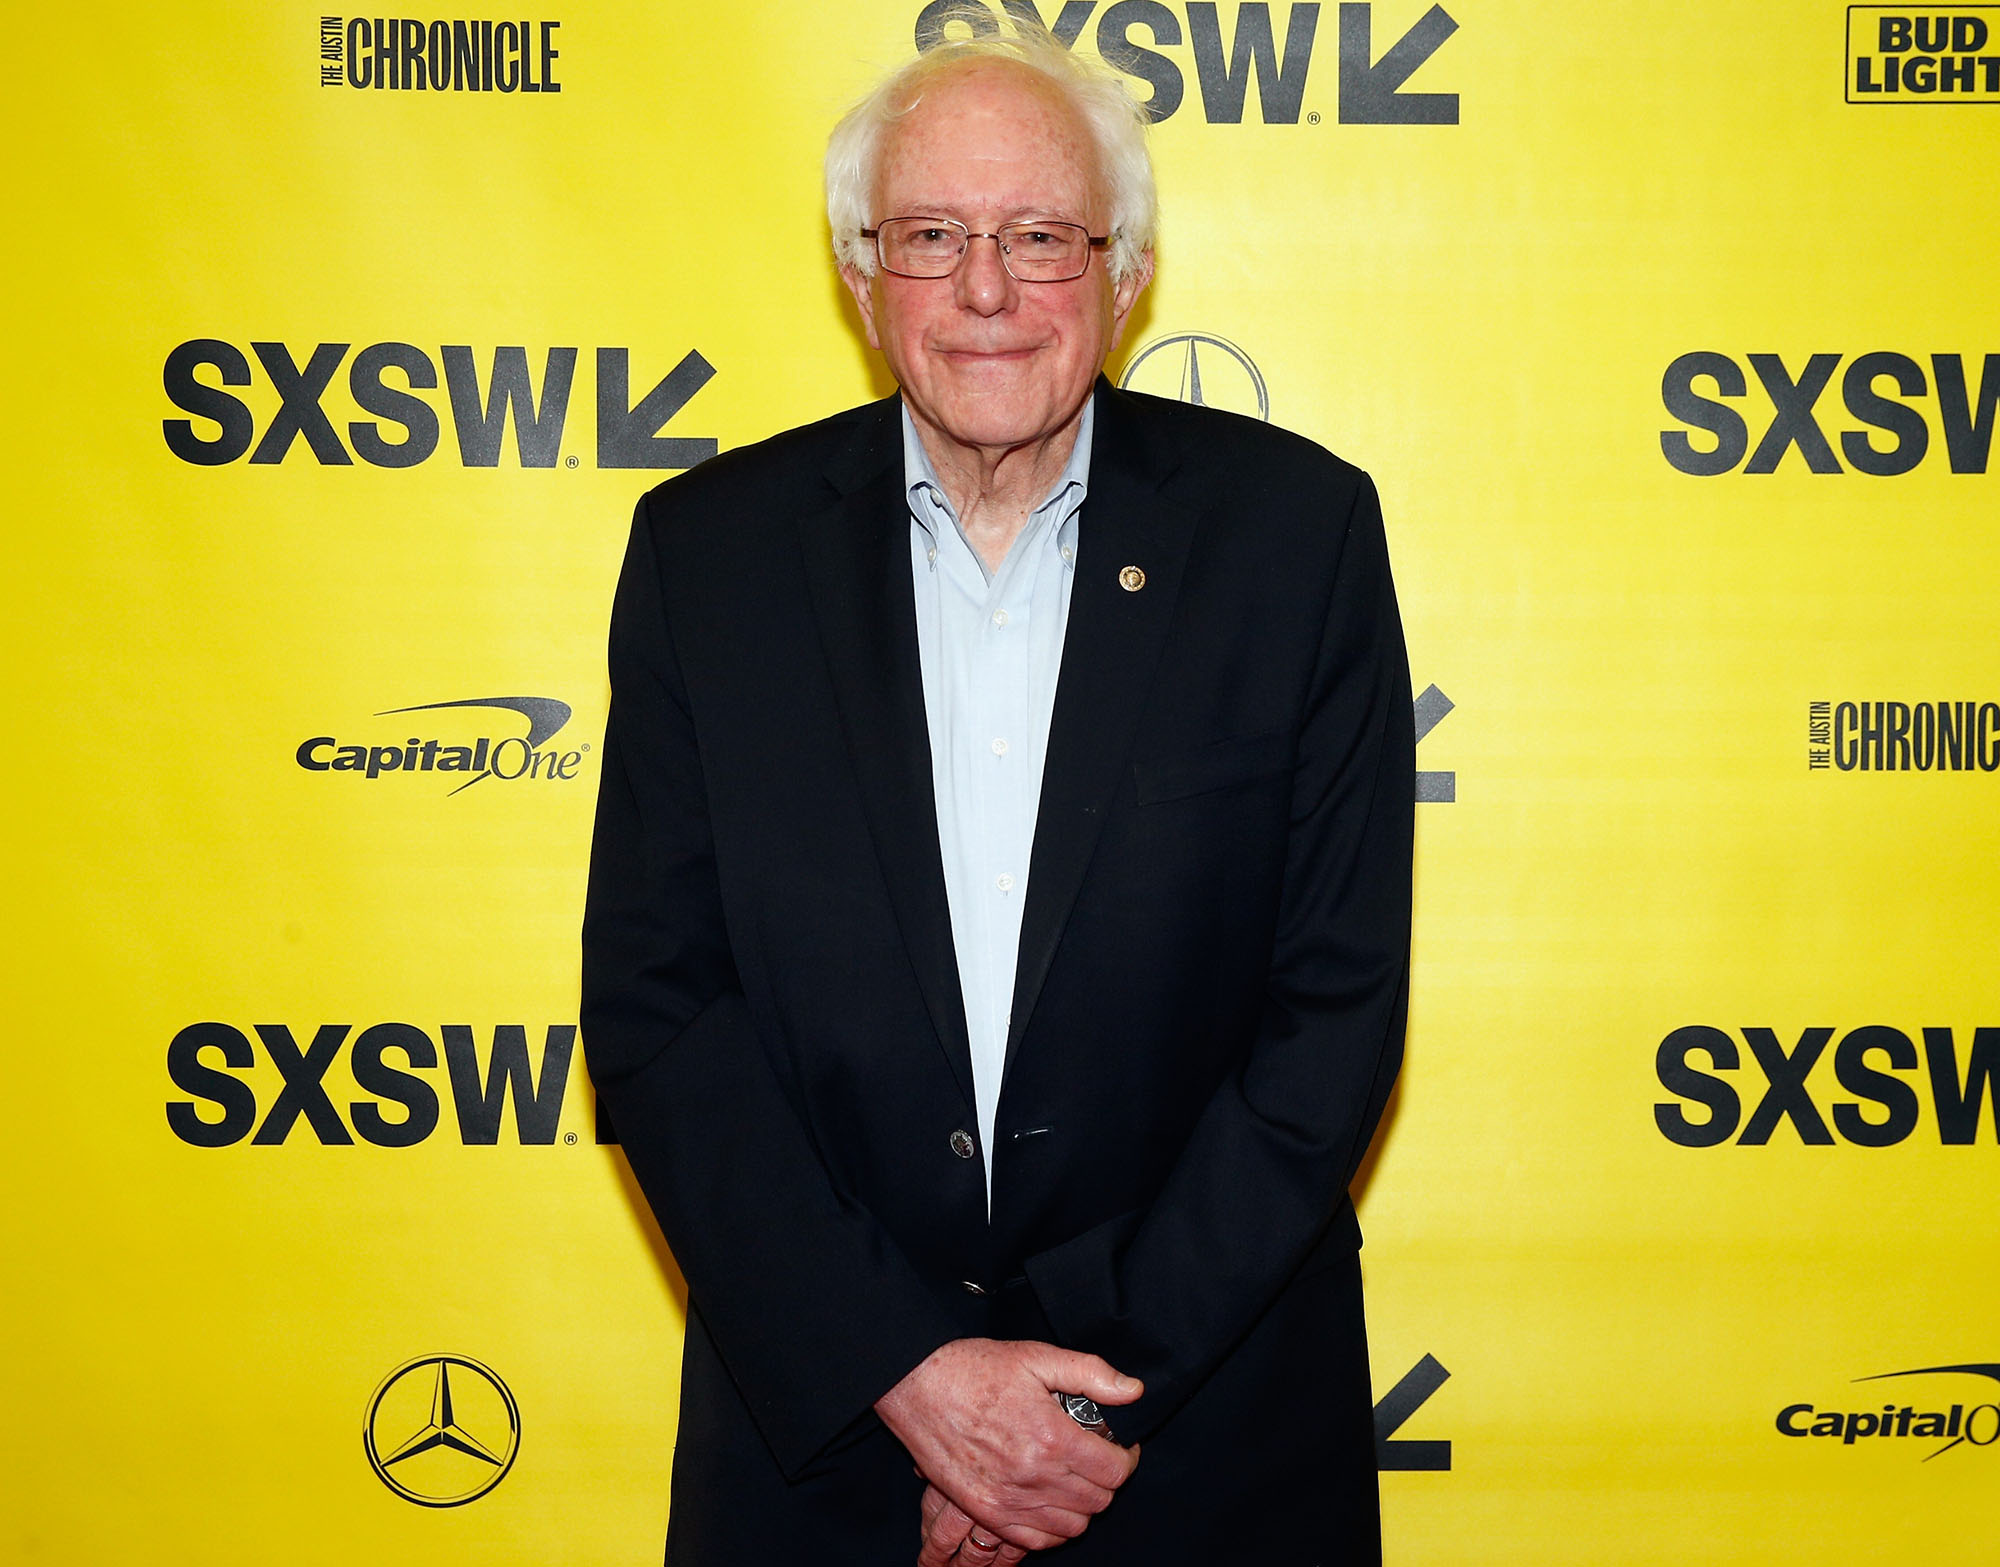 CNN's Jake Tapper in conversation with Bernie Sanders - 2018 SXSW Conference and Festivals